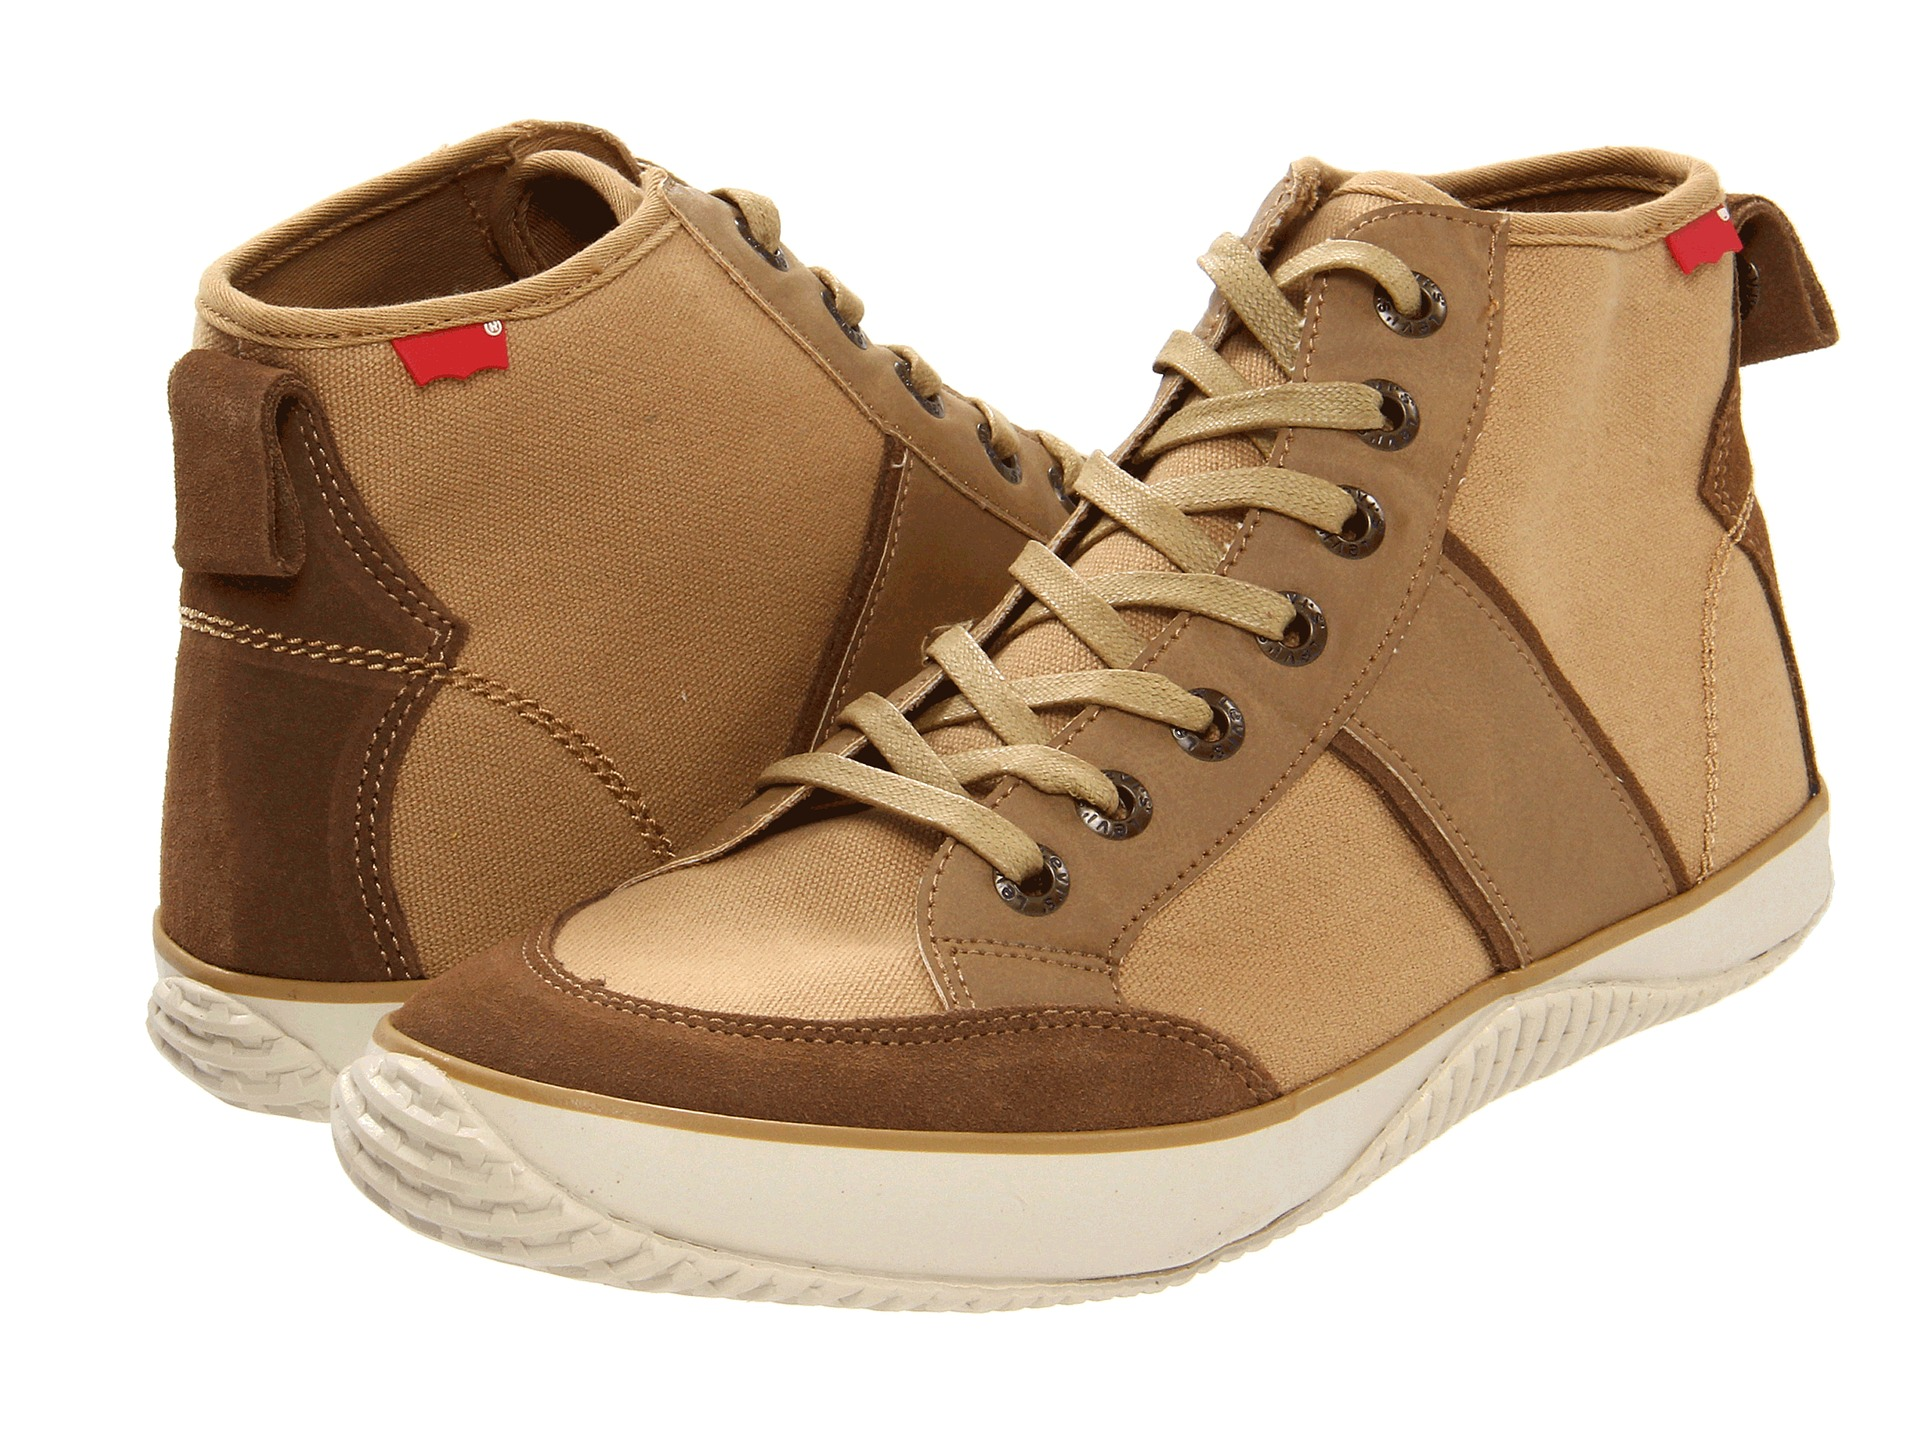 mejor shoe company Softspotscom is the official softspots shoes website softspots come in all sizes and widths to guarantee a great fit superb detailing and materials give softspots the style every woman craves.